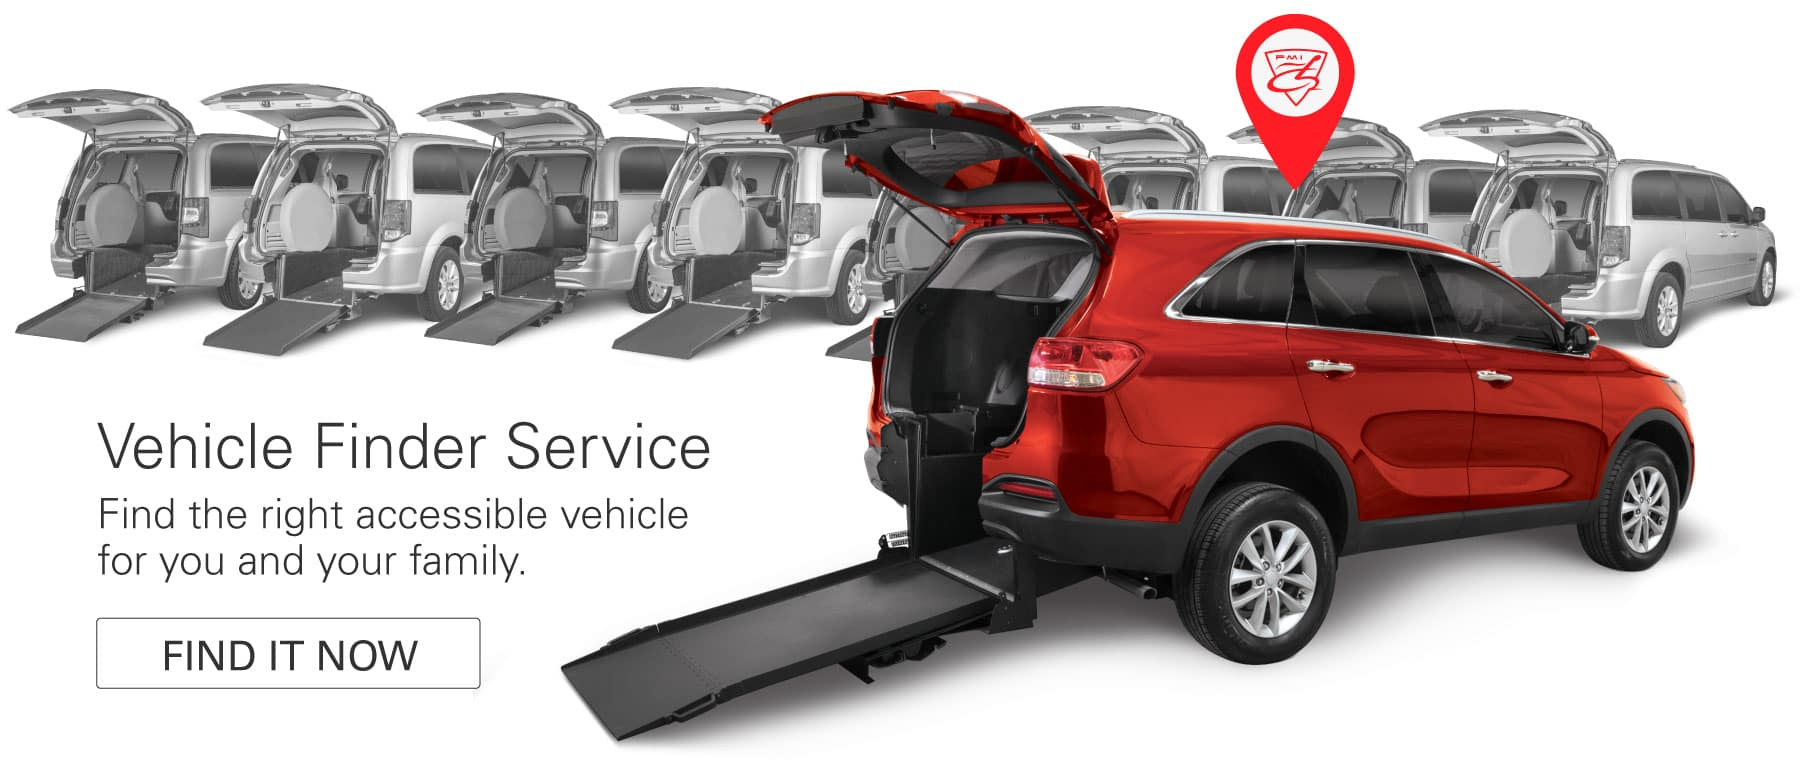 Find the right accessible vehicle for you and your family.